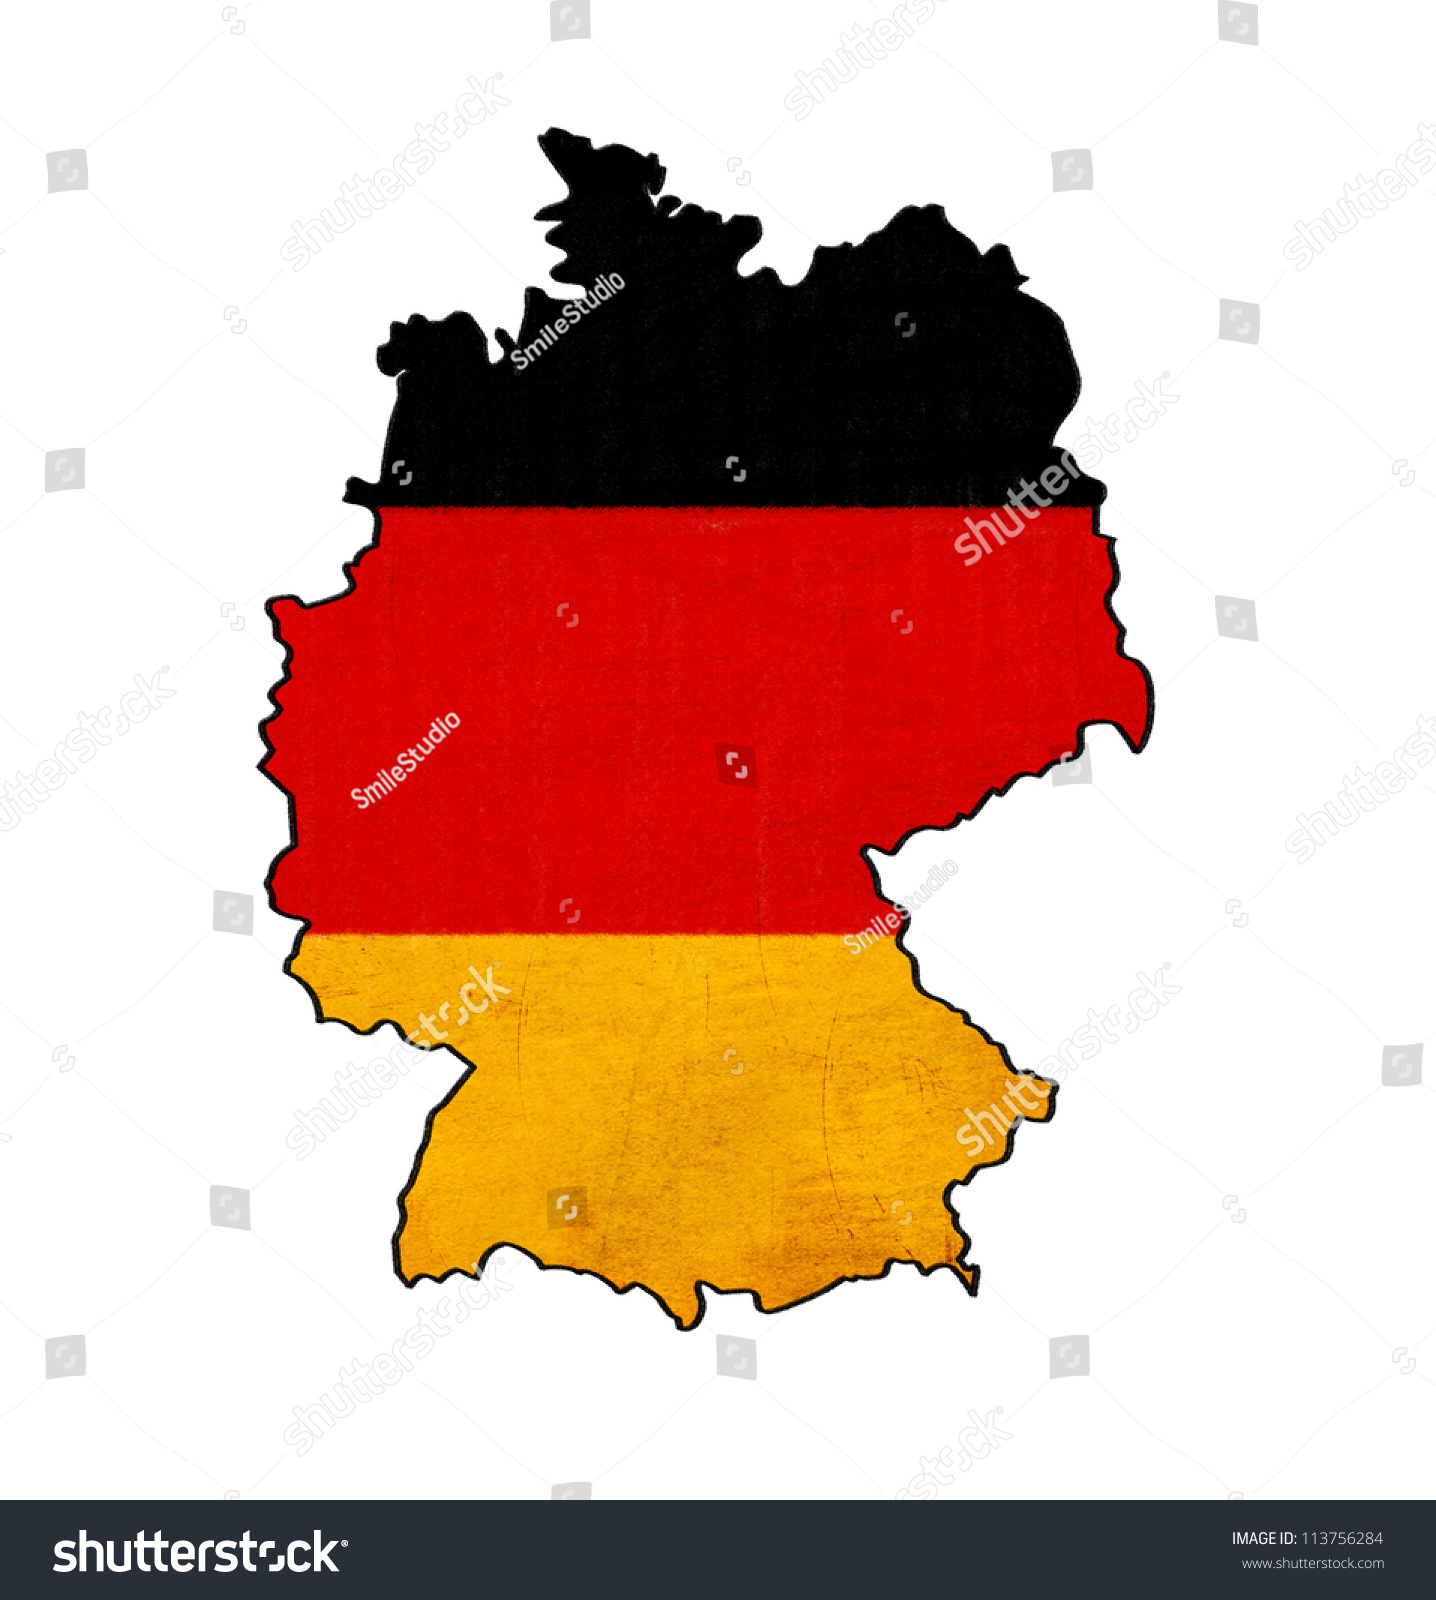 Germany Map On Germany Flag Drawing Stock Illustration - Germany map drawing